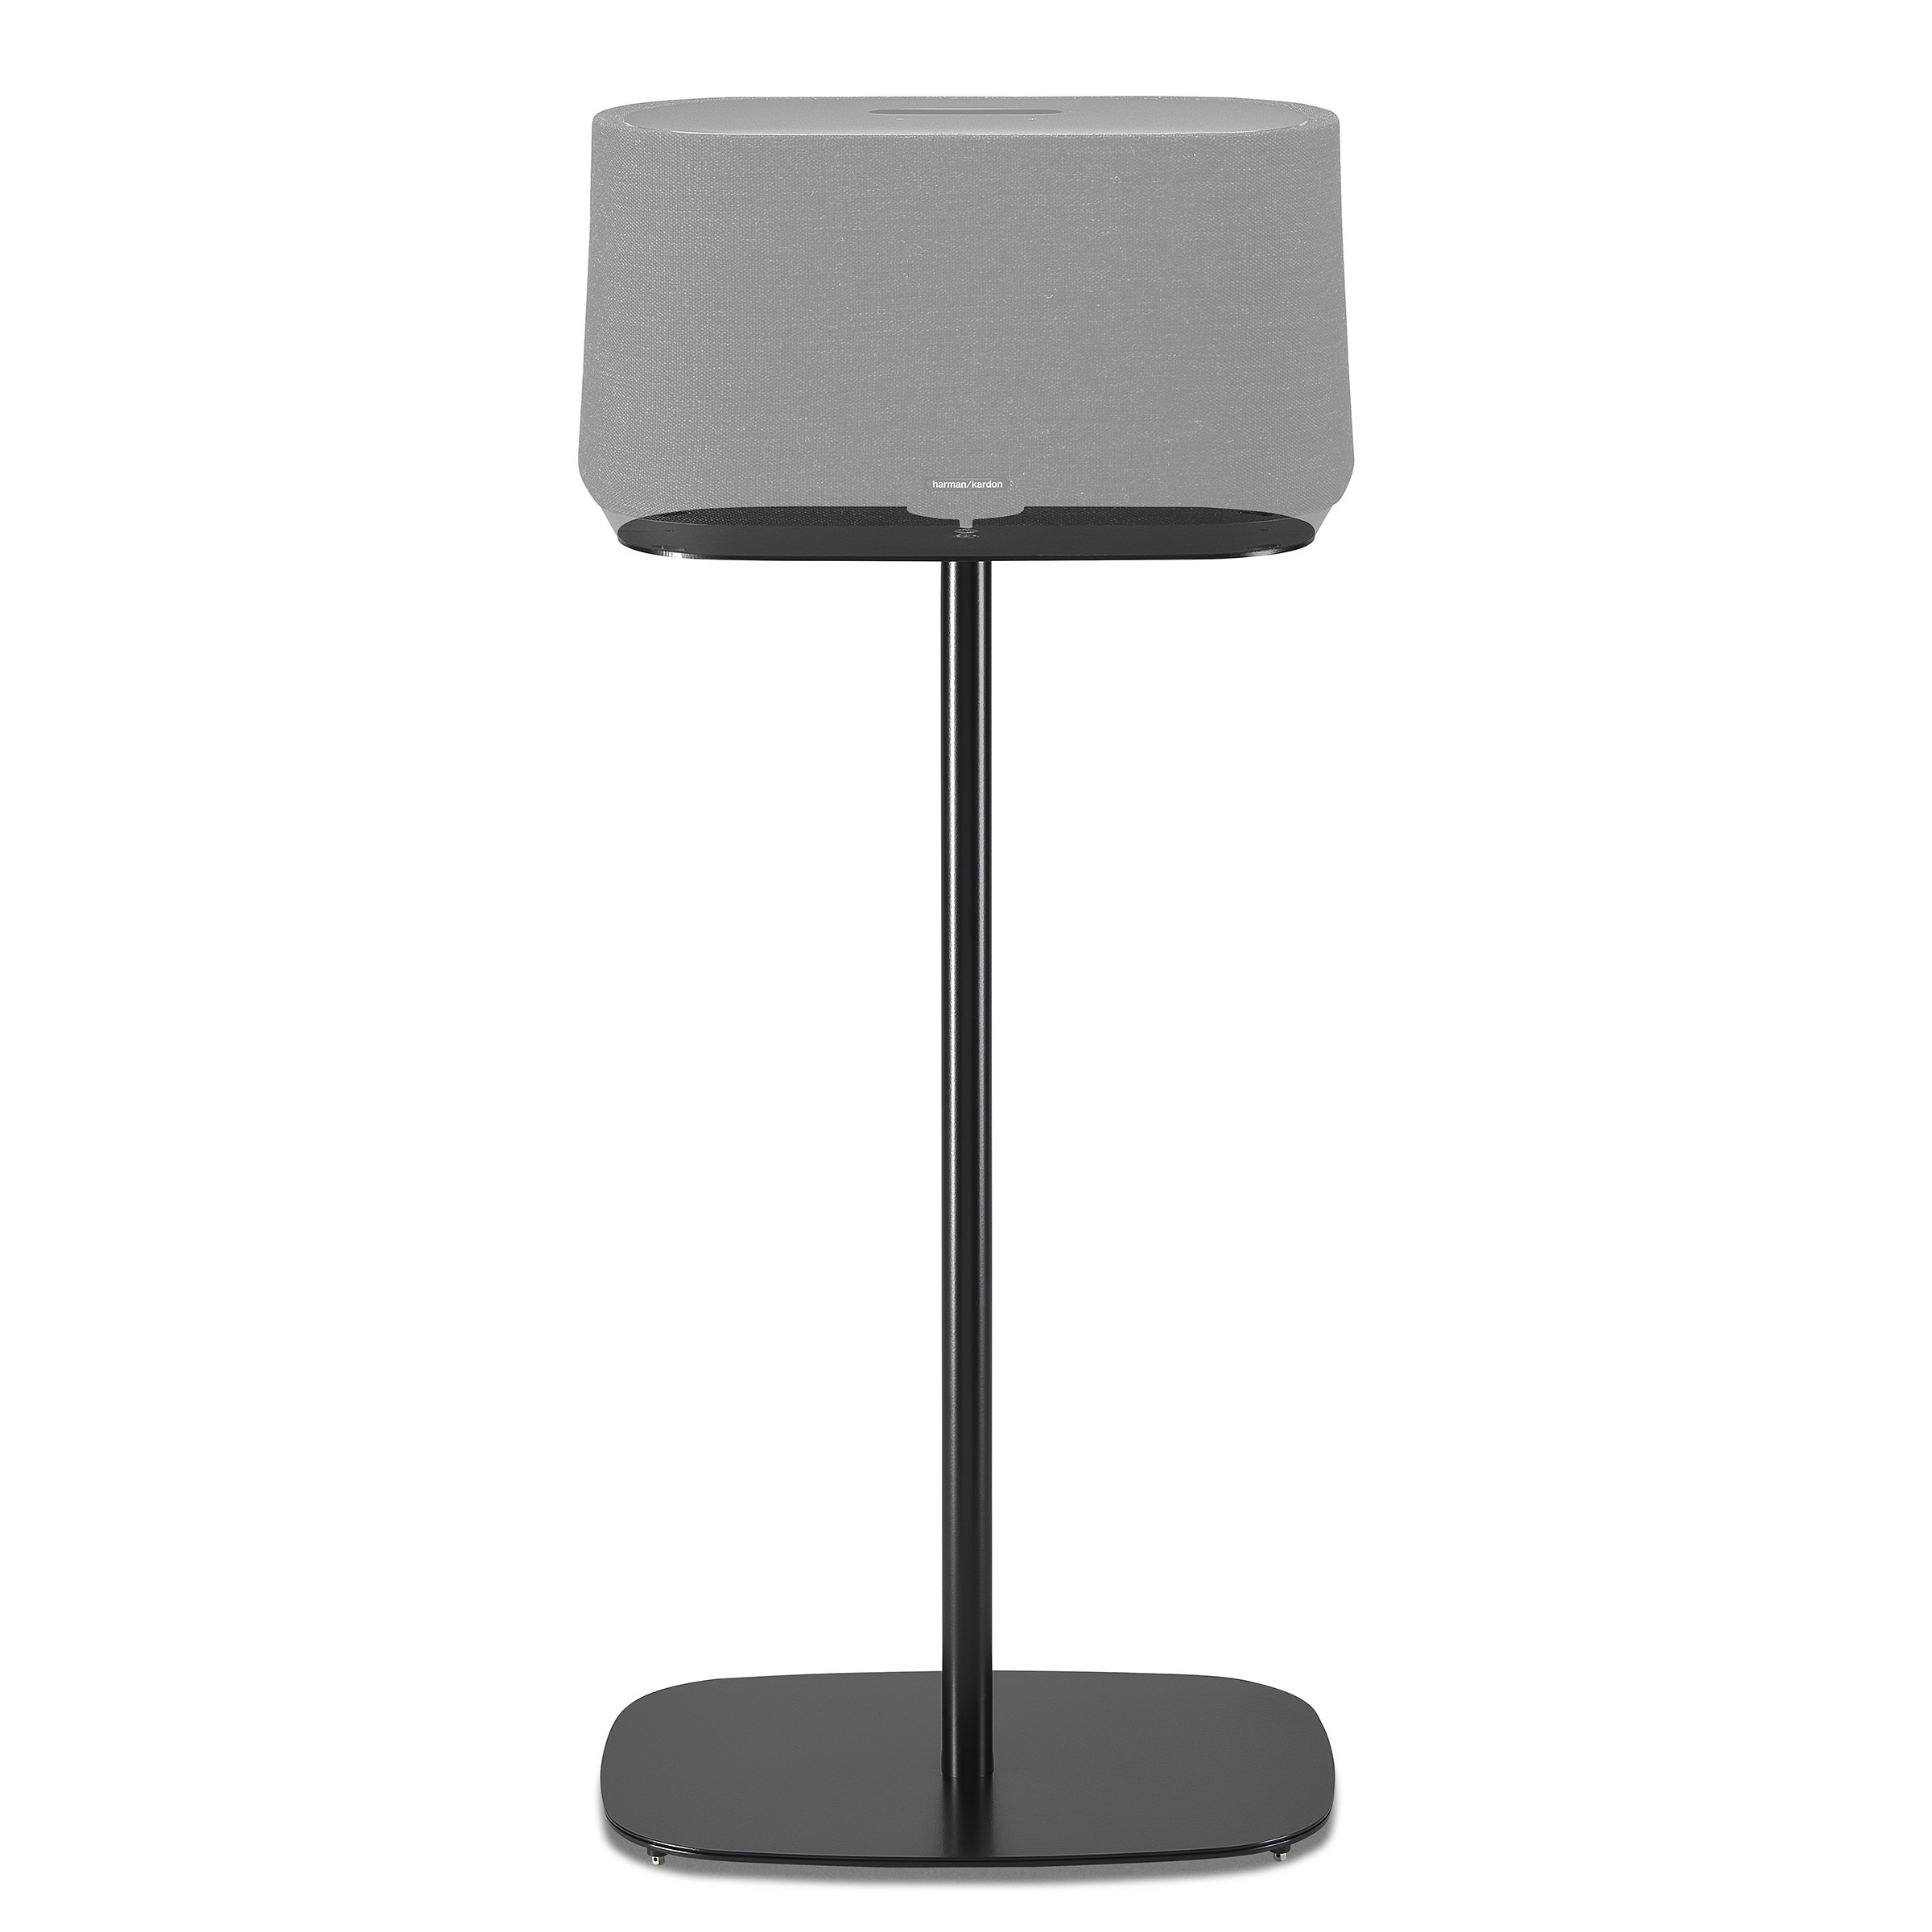 Harman Kardon Citation 500 standaard zwart 12